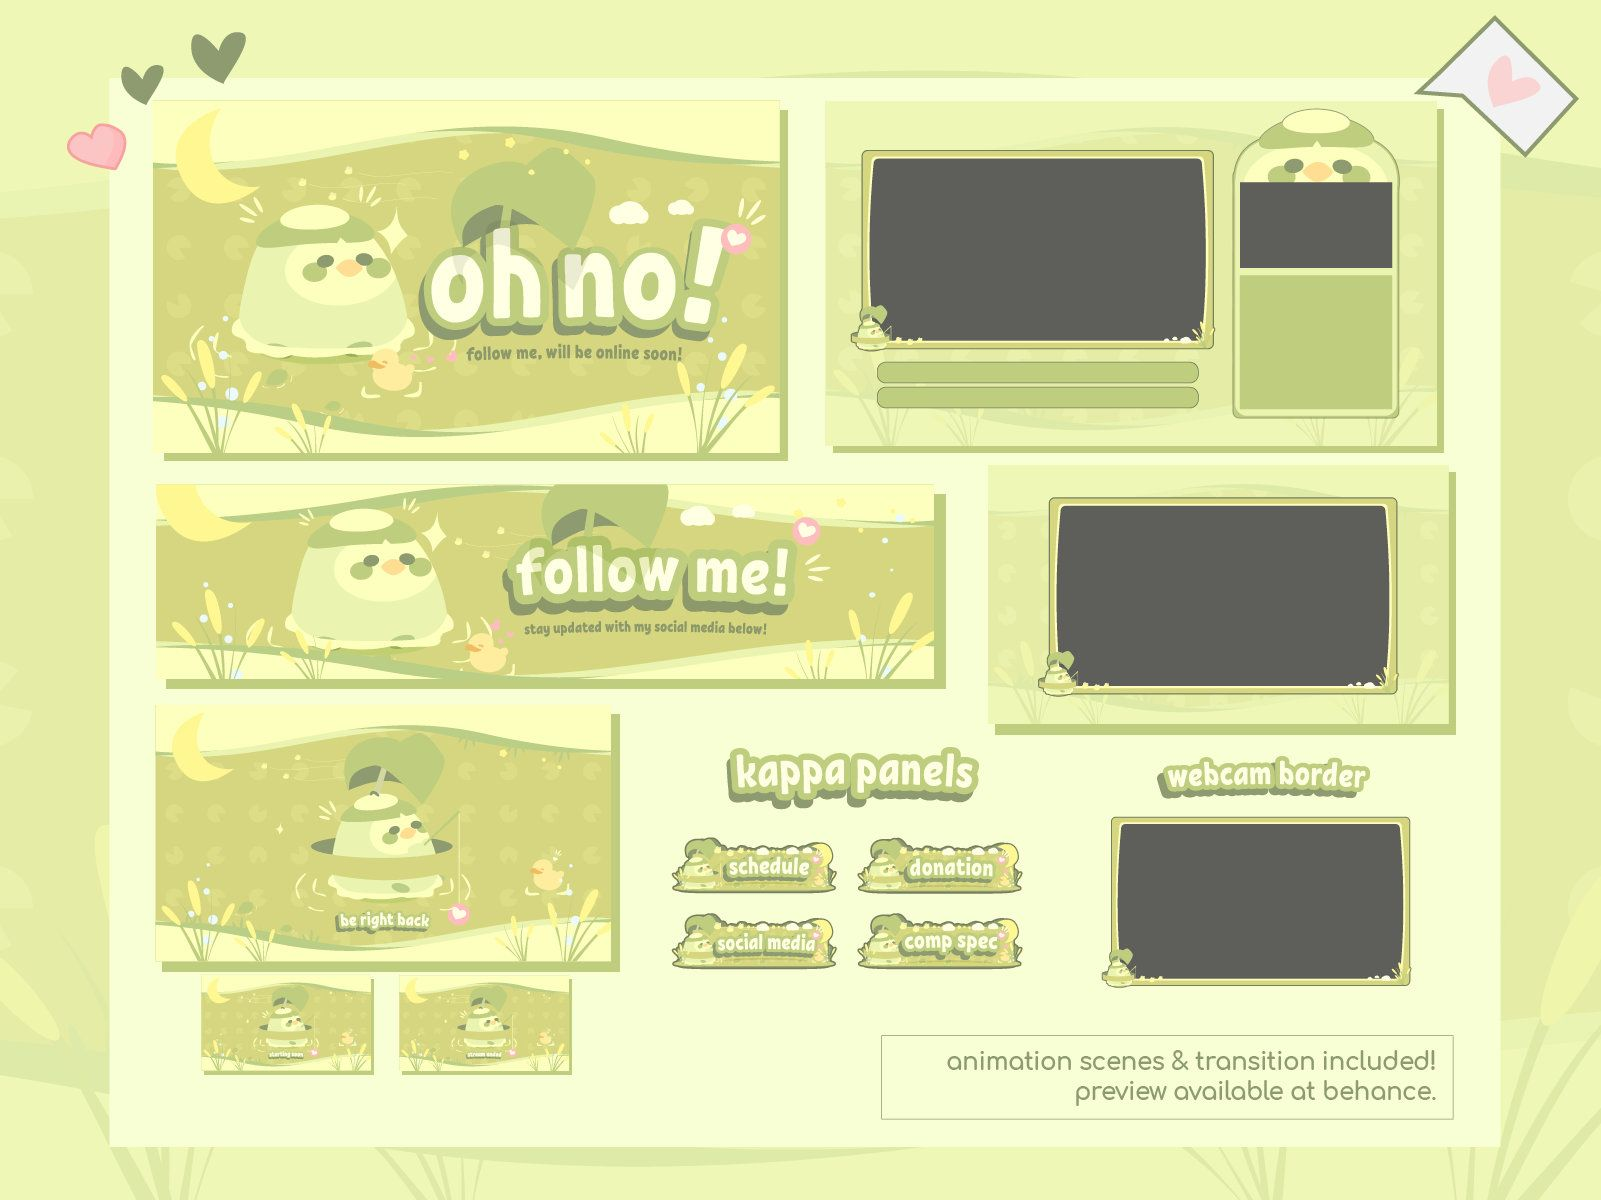 Pastel Green Cute Twitch Overlay Stream Package Designs Lublub The Kappa By Tofulong On Etsy Packaging Design Twitch Streaming Setup Overlays Cute